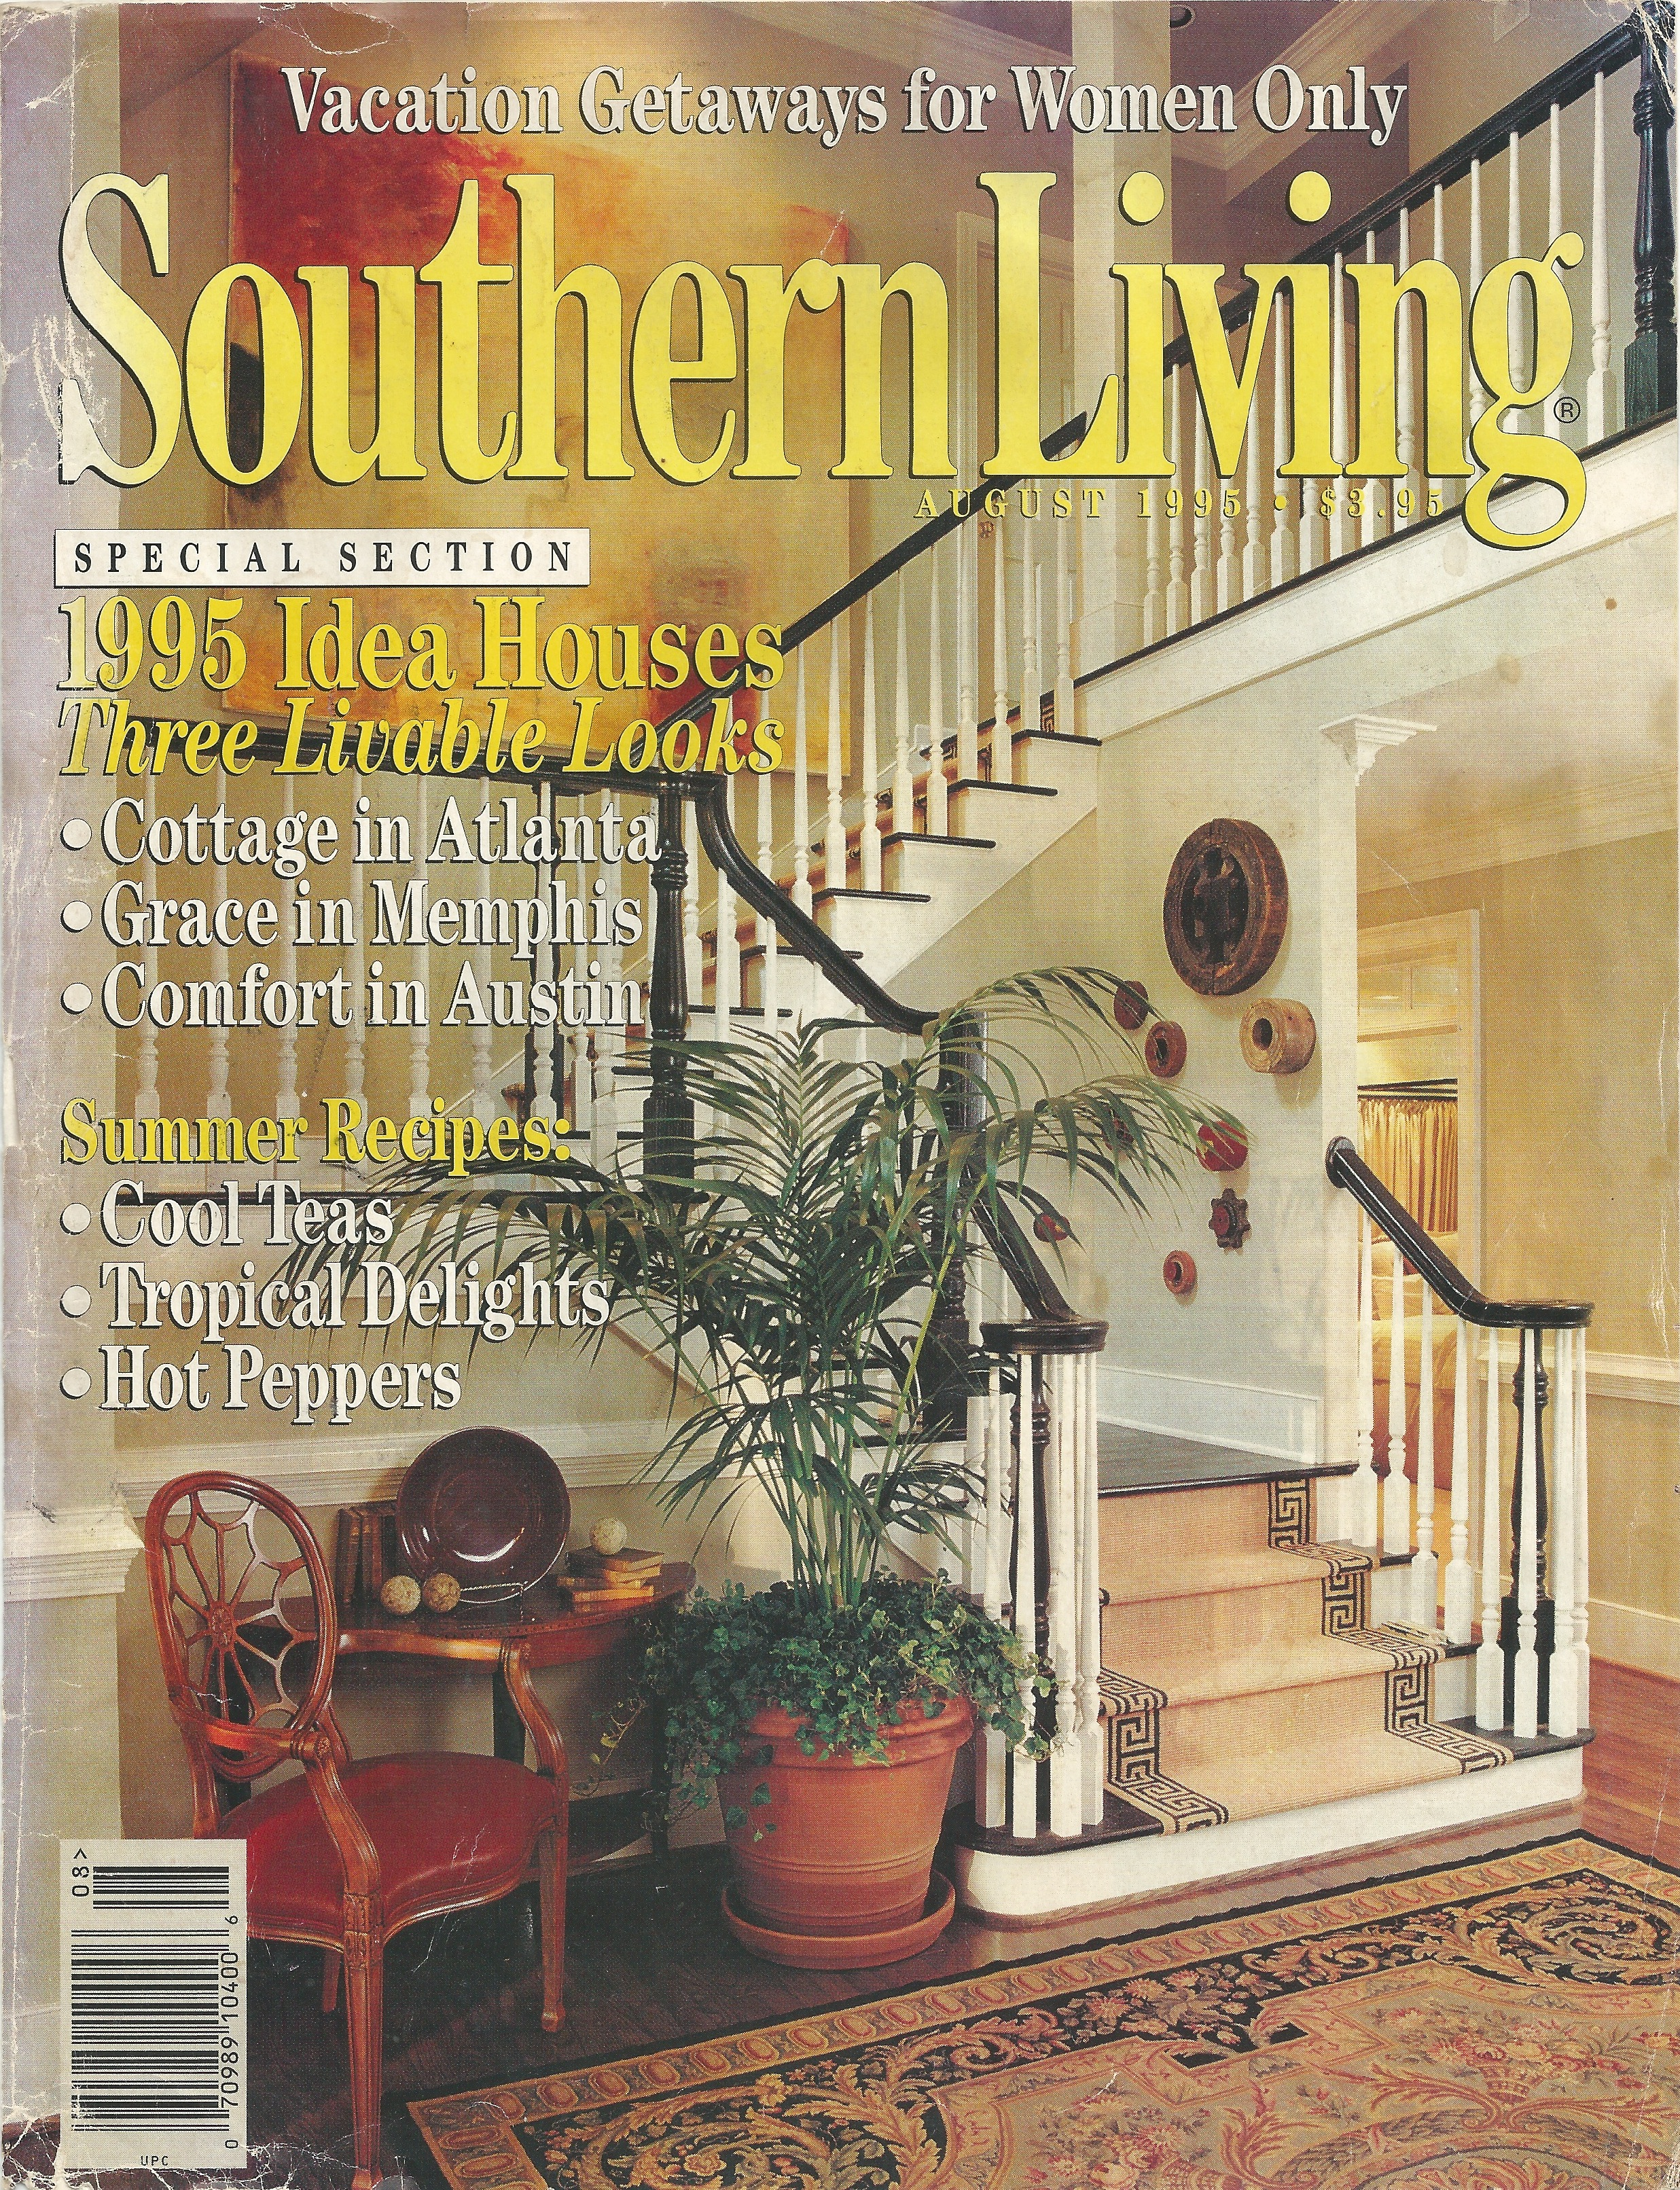 Southern Living Cover.jpg